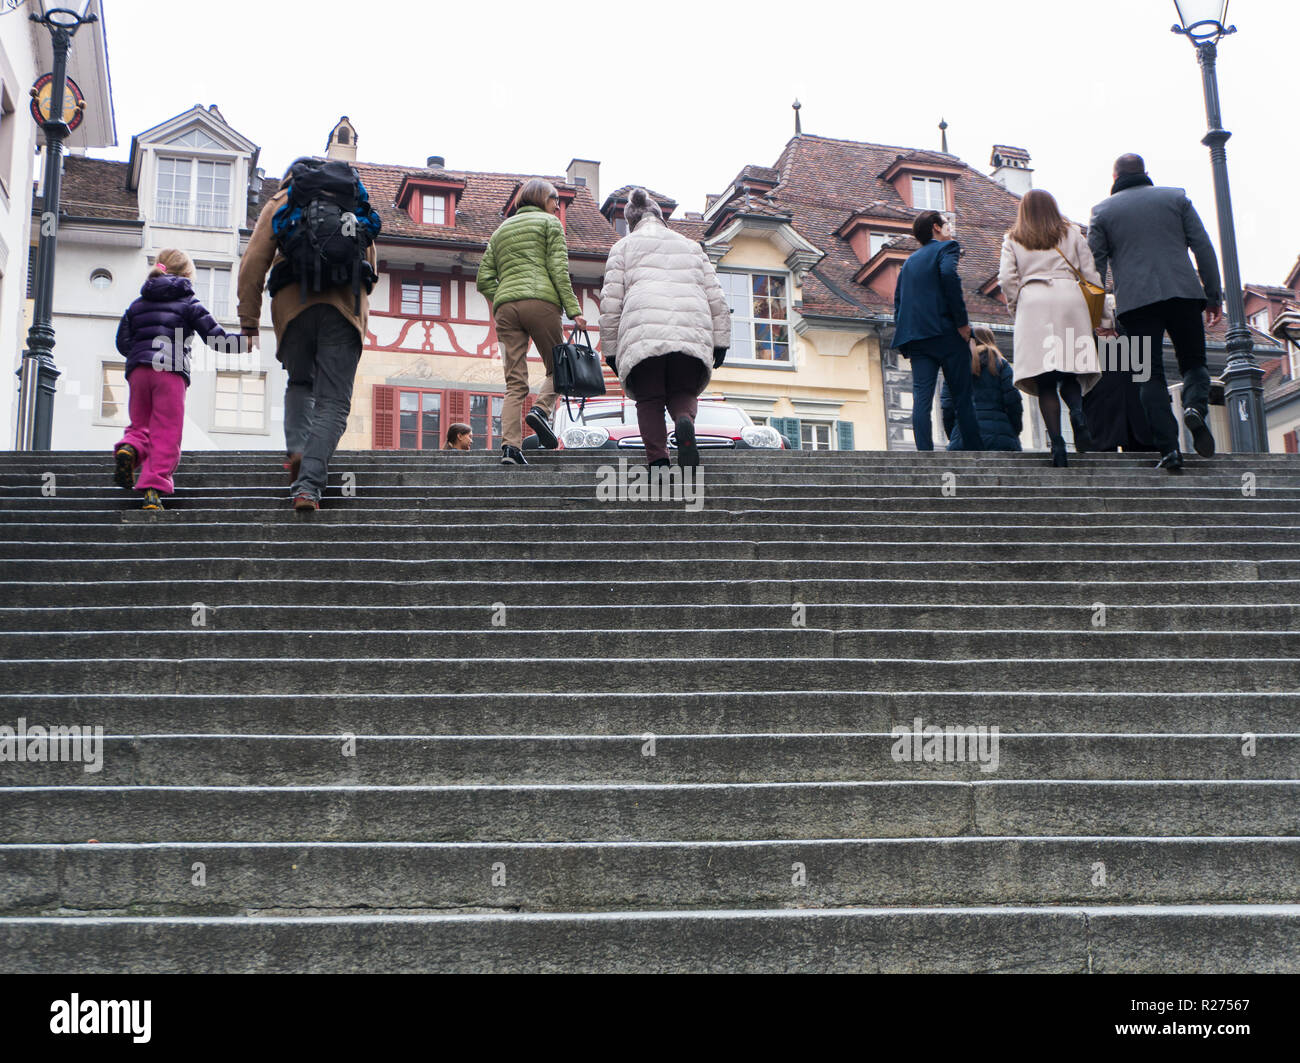 Lucerne, LU / Switzerland - November 9, 2018: many people of different age and gender rushing up and down old stone stairs in the historic city of Luc - Stock Image